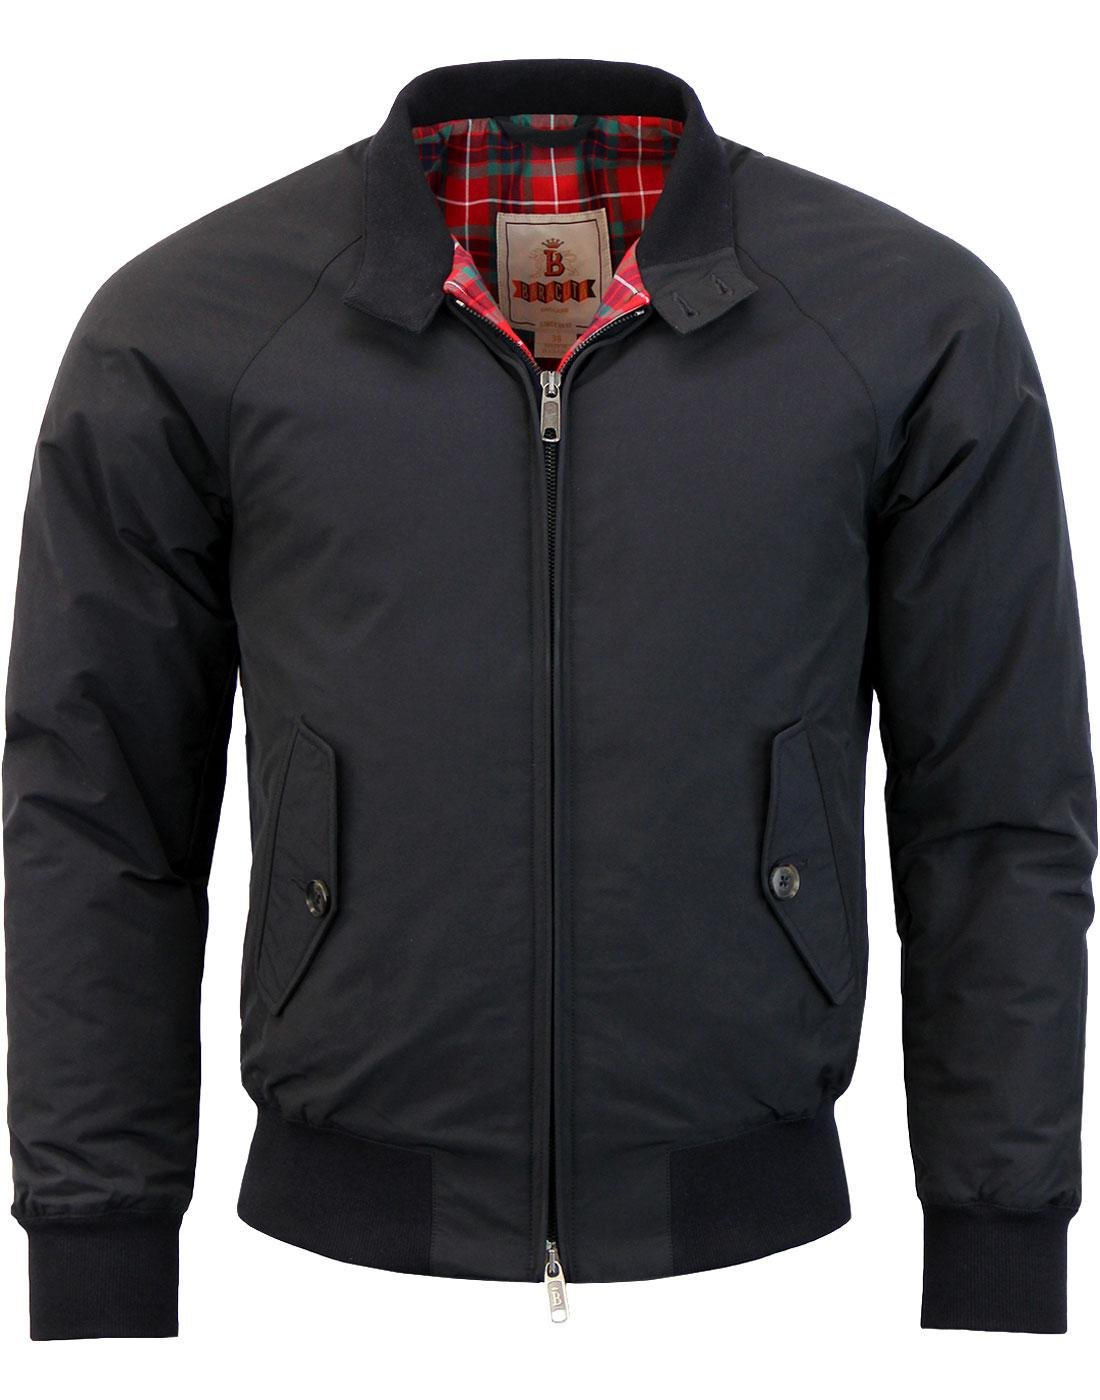 BARACUTA G9 Thermal Padded 60s Mod Harrington (DN)